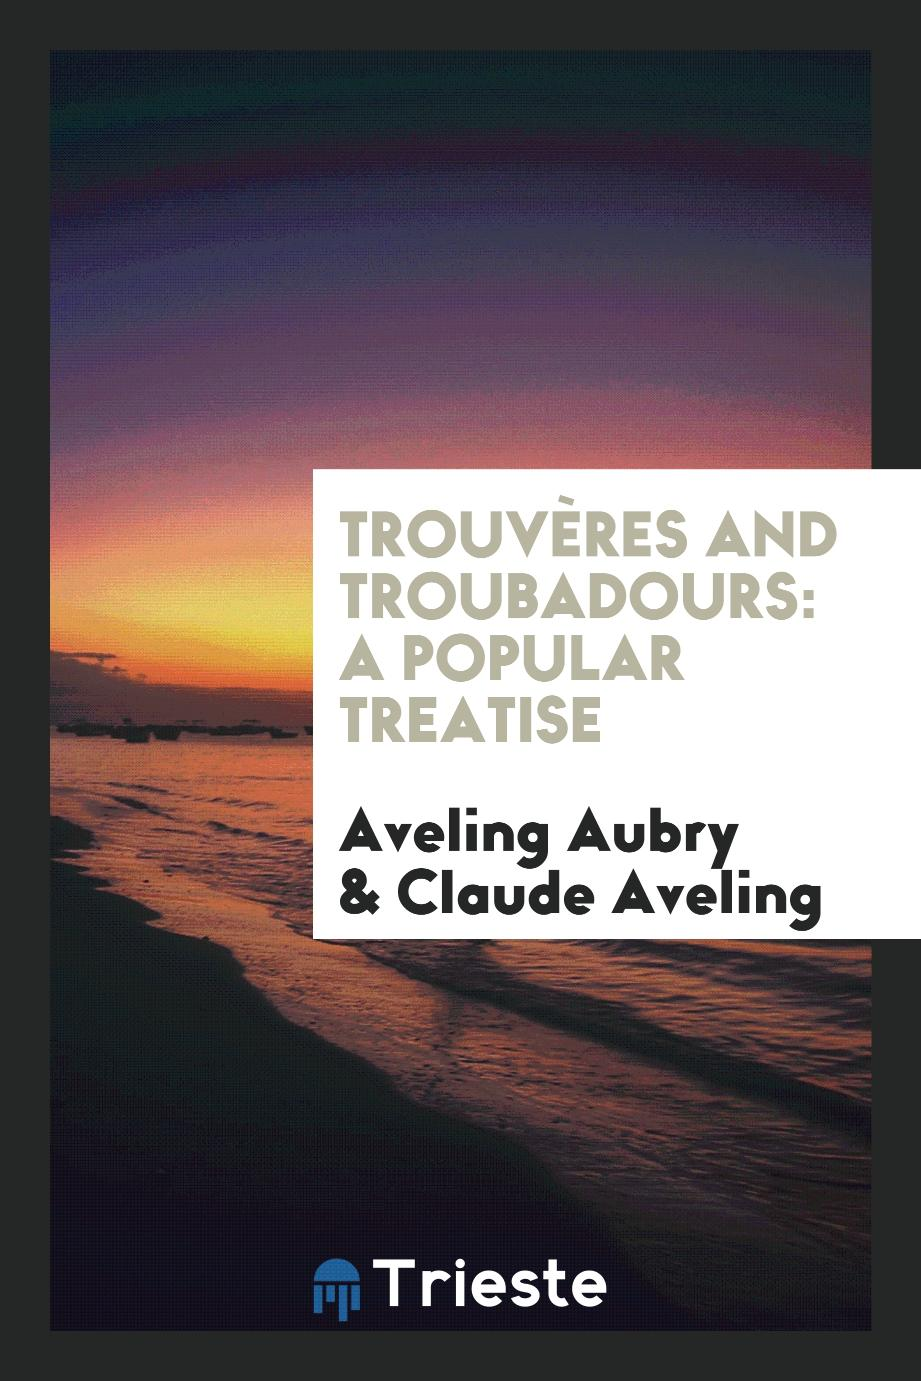 Trouvères and Troubadours: A Popular Treatise